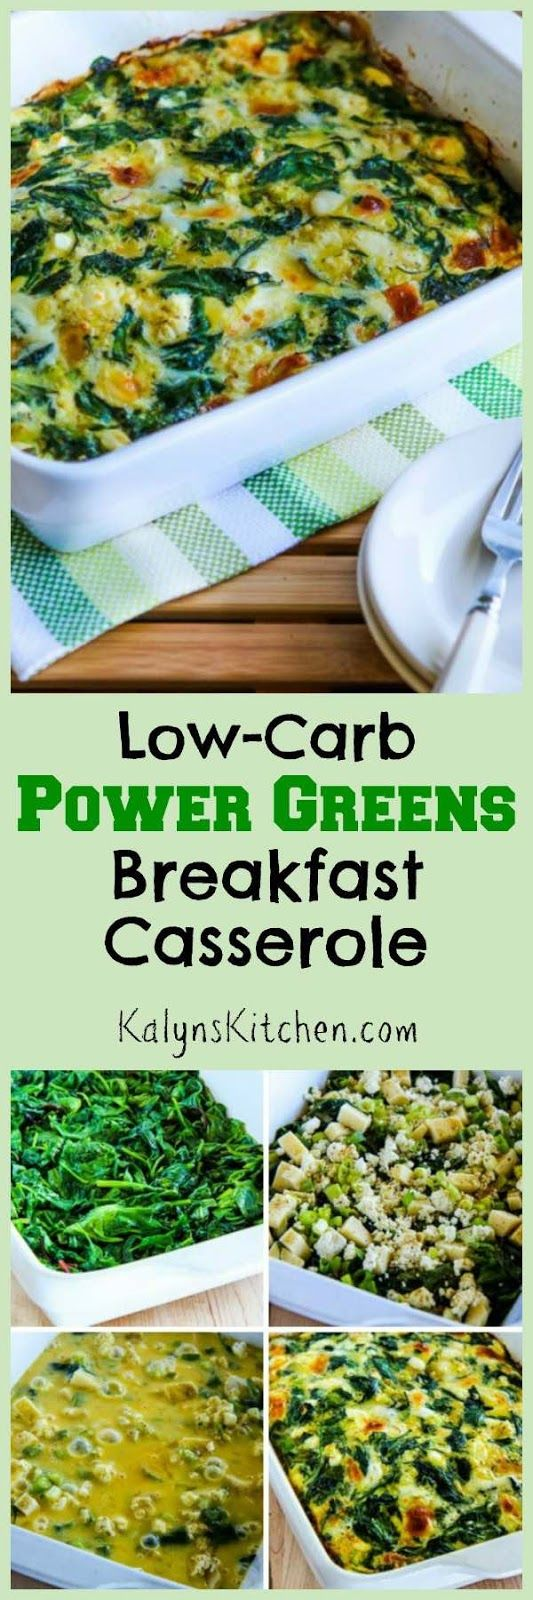 This Low-Carb Power Greens Breakfast Casserole is a delicious way to start the day with greens! And this tasty recipe is also Keto, low-glycemic, gluten-free, and South Beach Diet friendly. [found on KalynsKitchen.com]